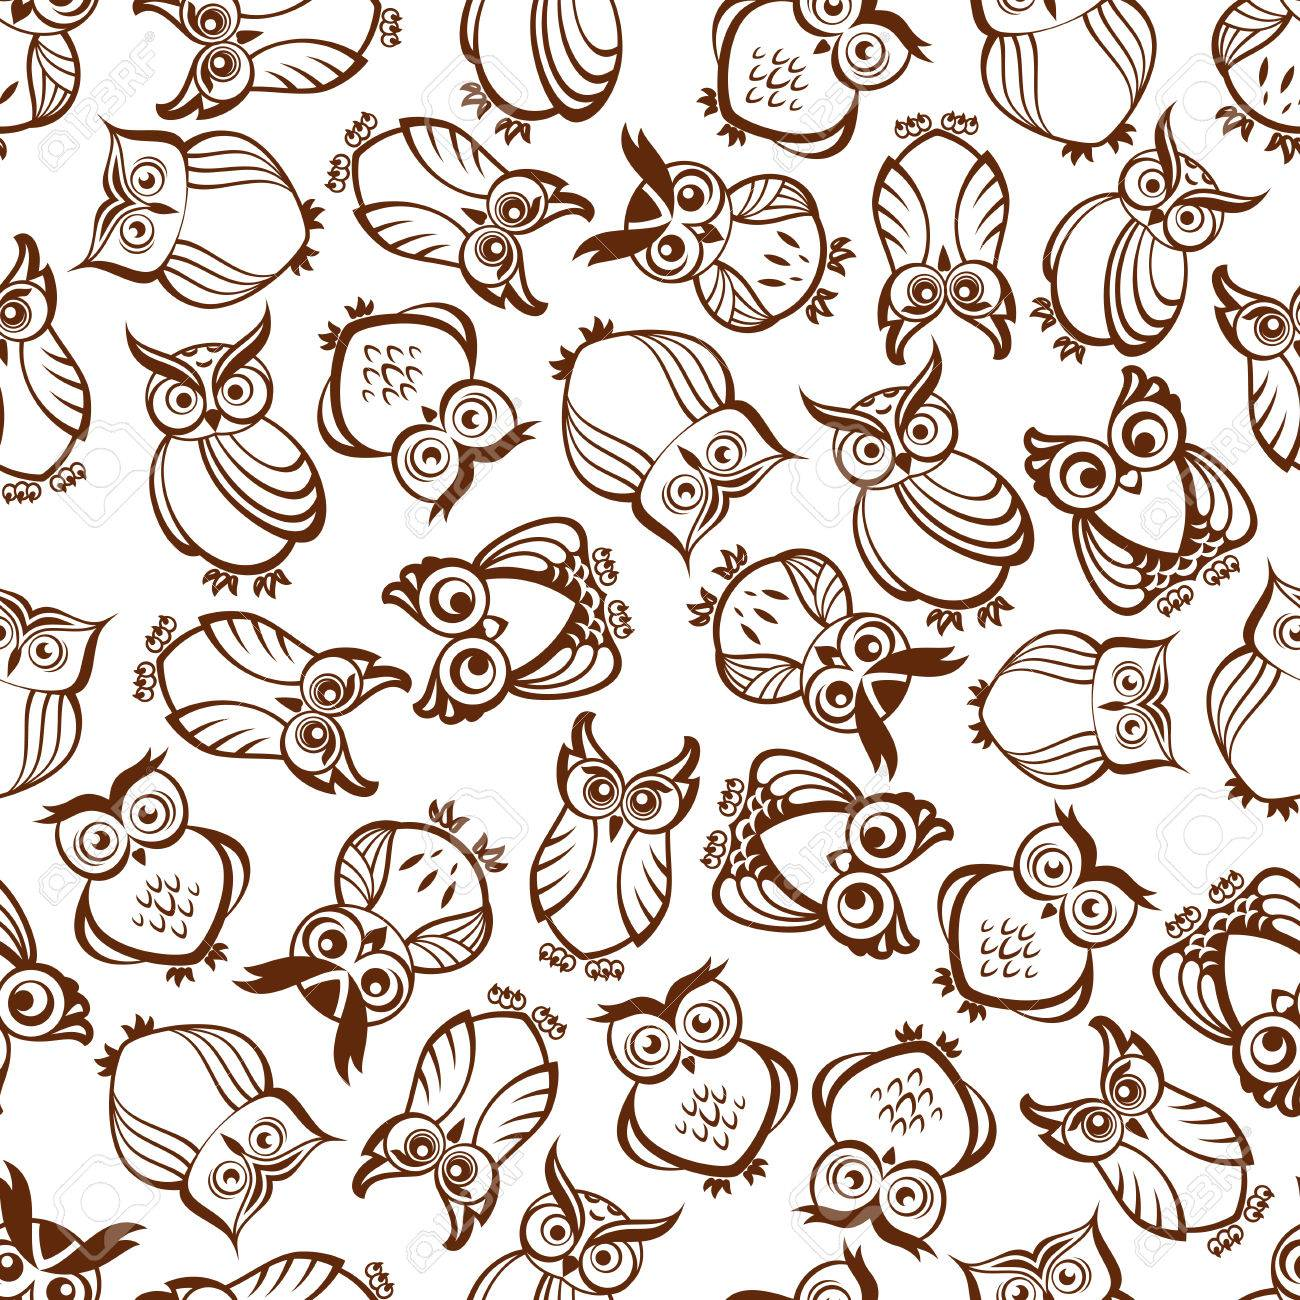 Cute Brown Owls Seamless Pattern With Outline Silhouettes Of